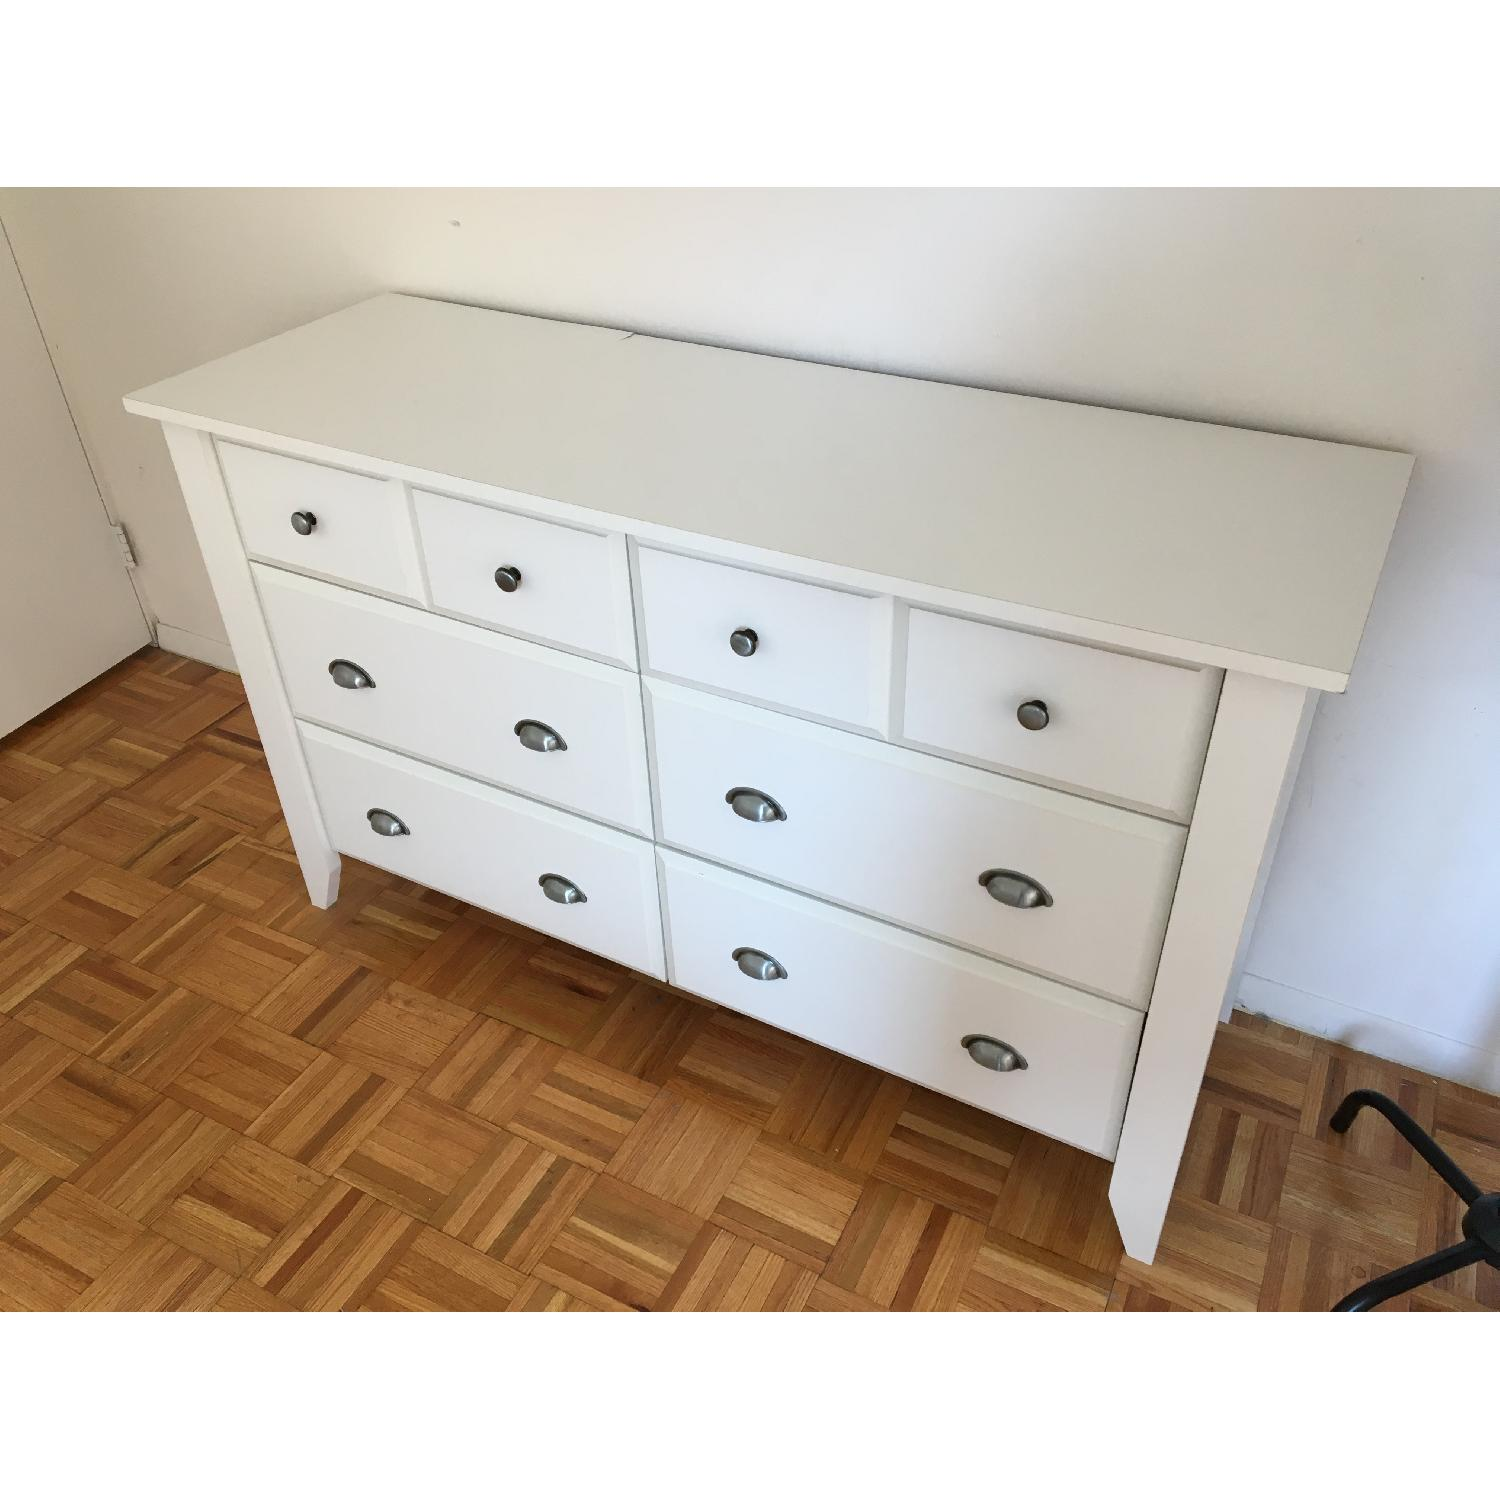 Sauder Shoal Creek Dresser in Soft White finish - image-5